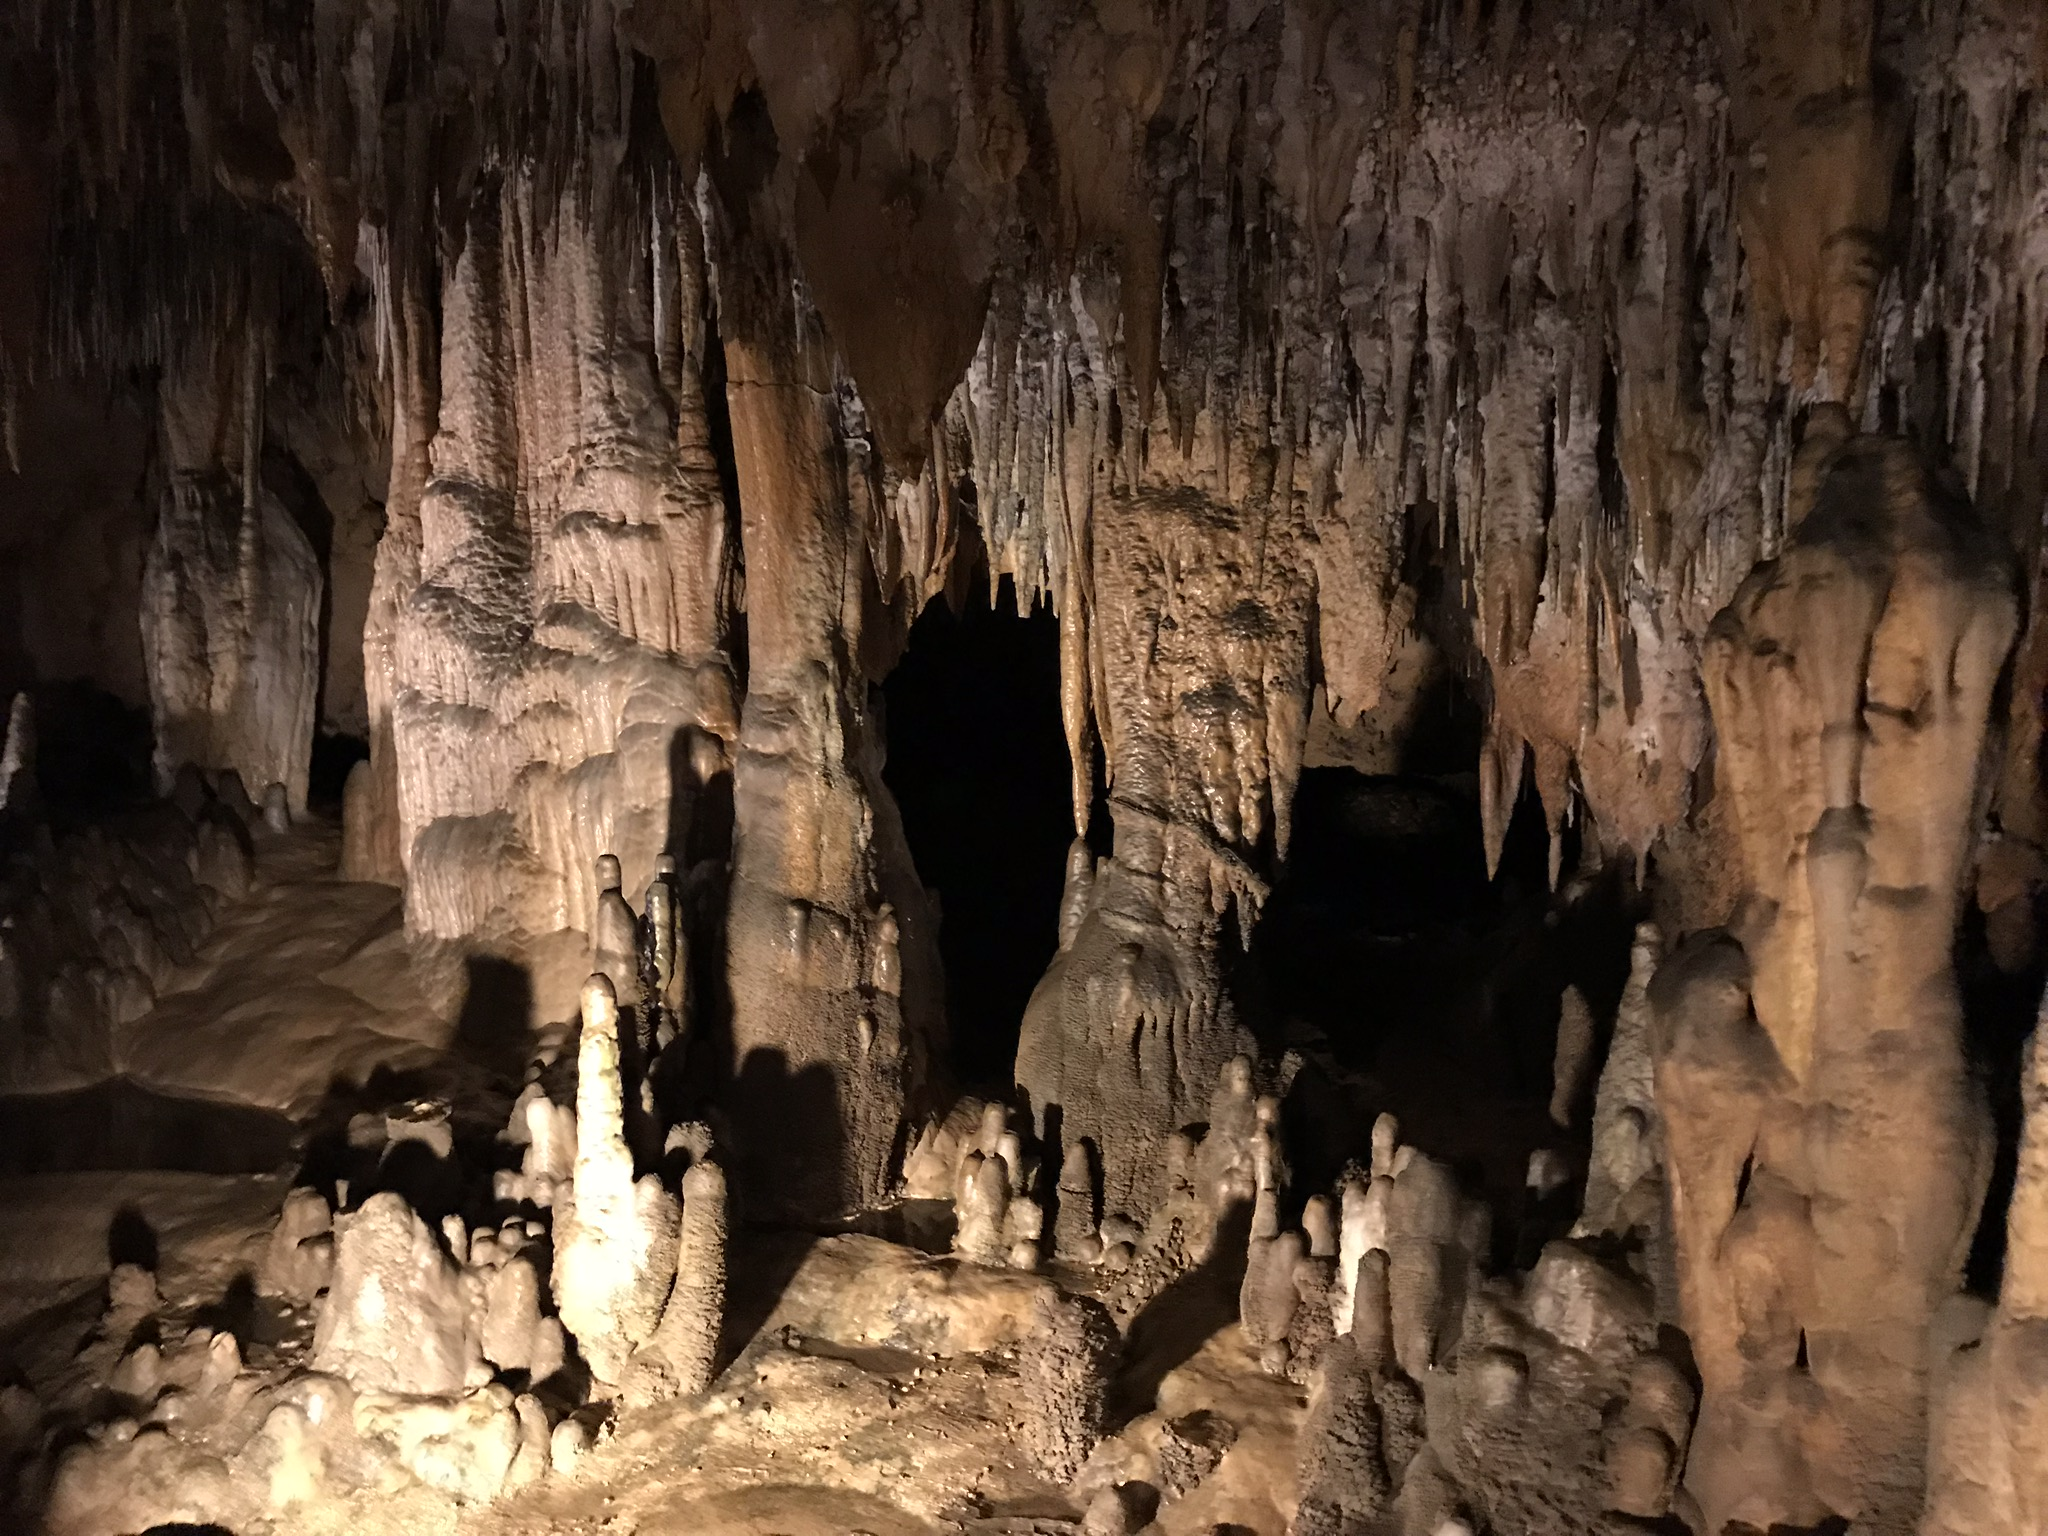 Exploring the Caverns in Florida